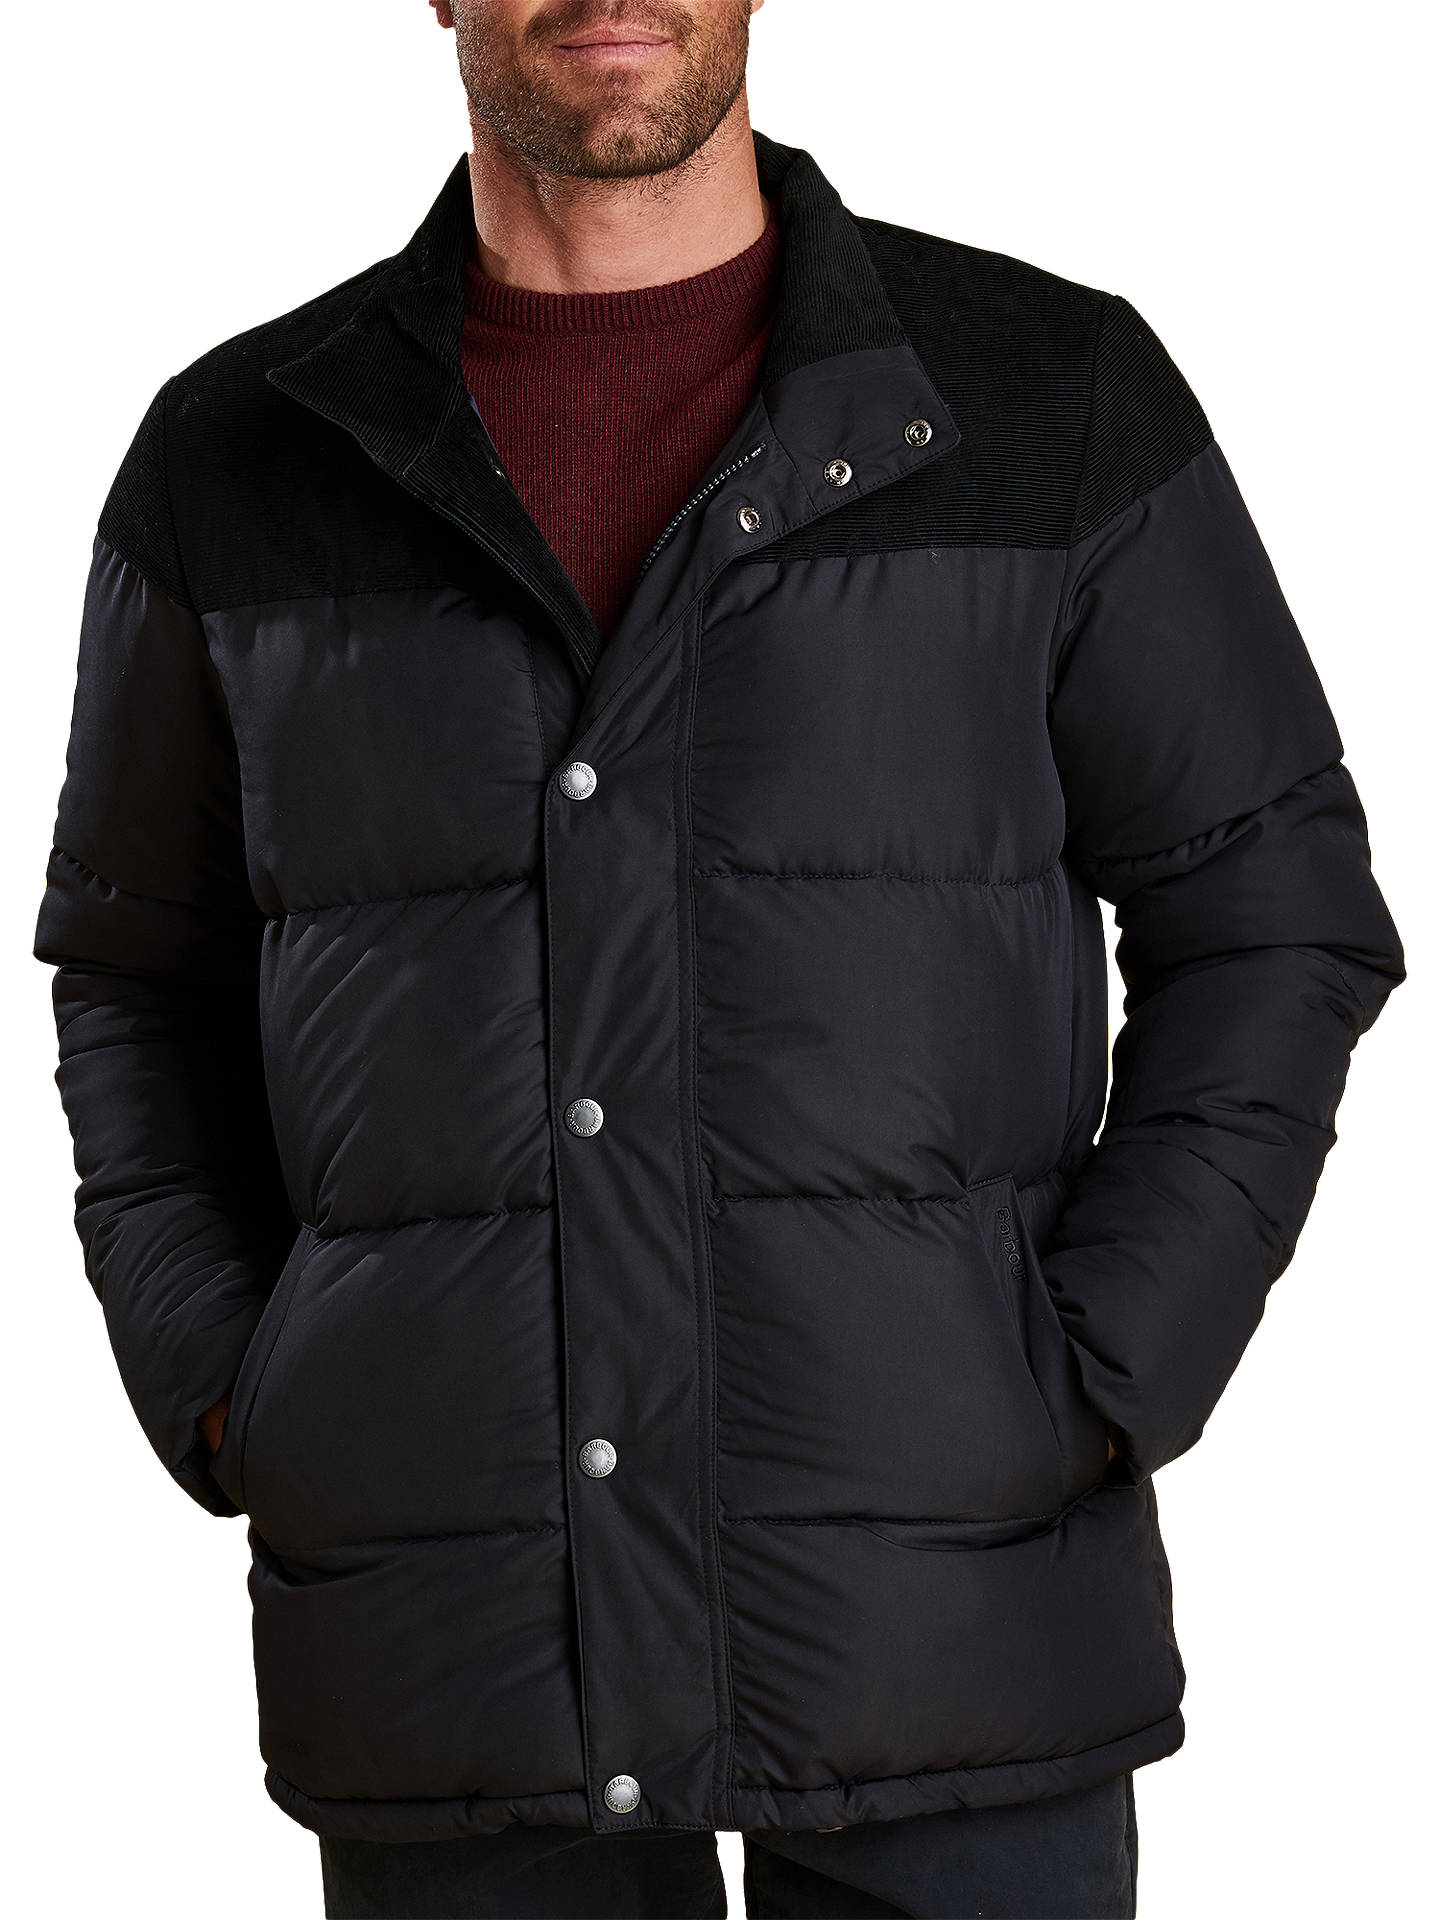 BuyBarbour Spean Puffer Jacket, Navy, M Online at johnlewis.com